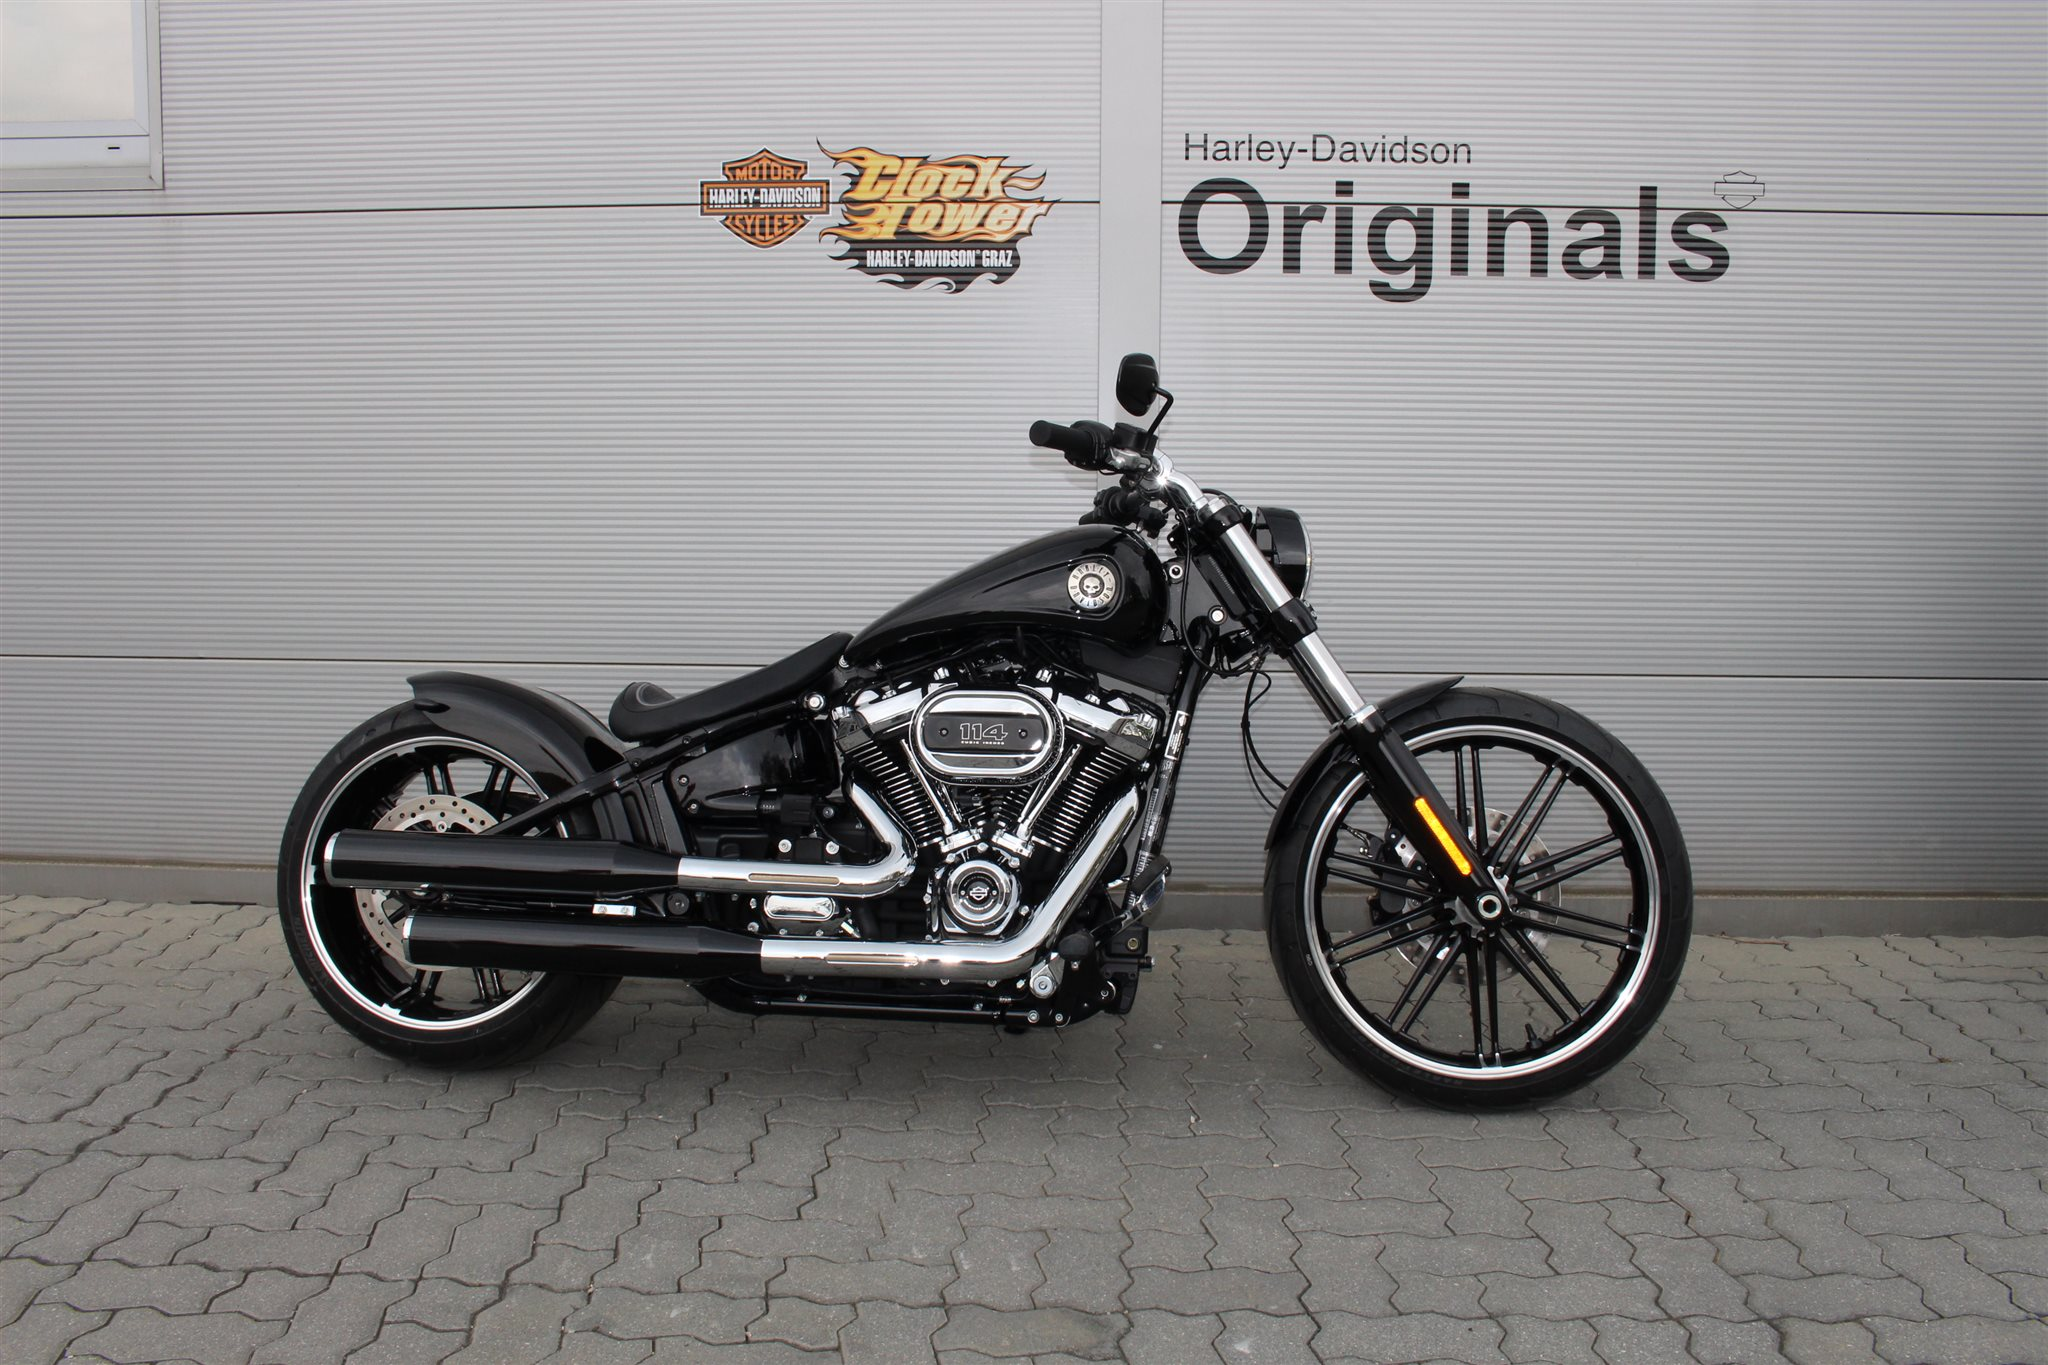 gebrauchte harley davidson softail breakout 114 fxbrs erstzulassung 2018 10 km preis 39. Black Bedroom Furniture Sets. Home Design Ideas